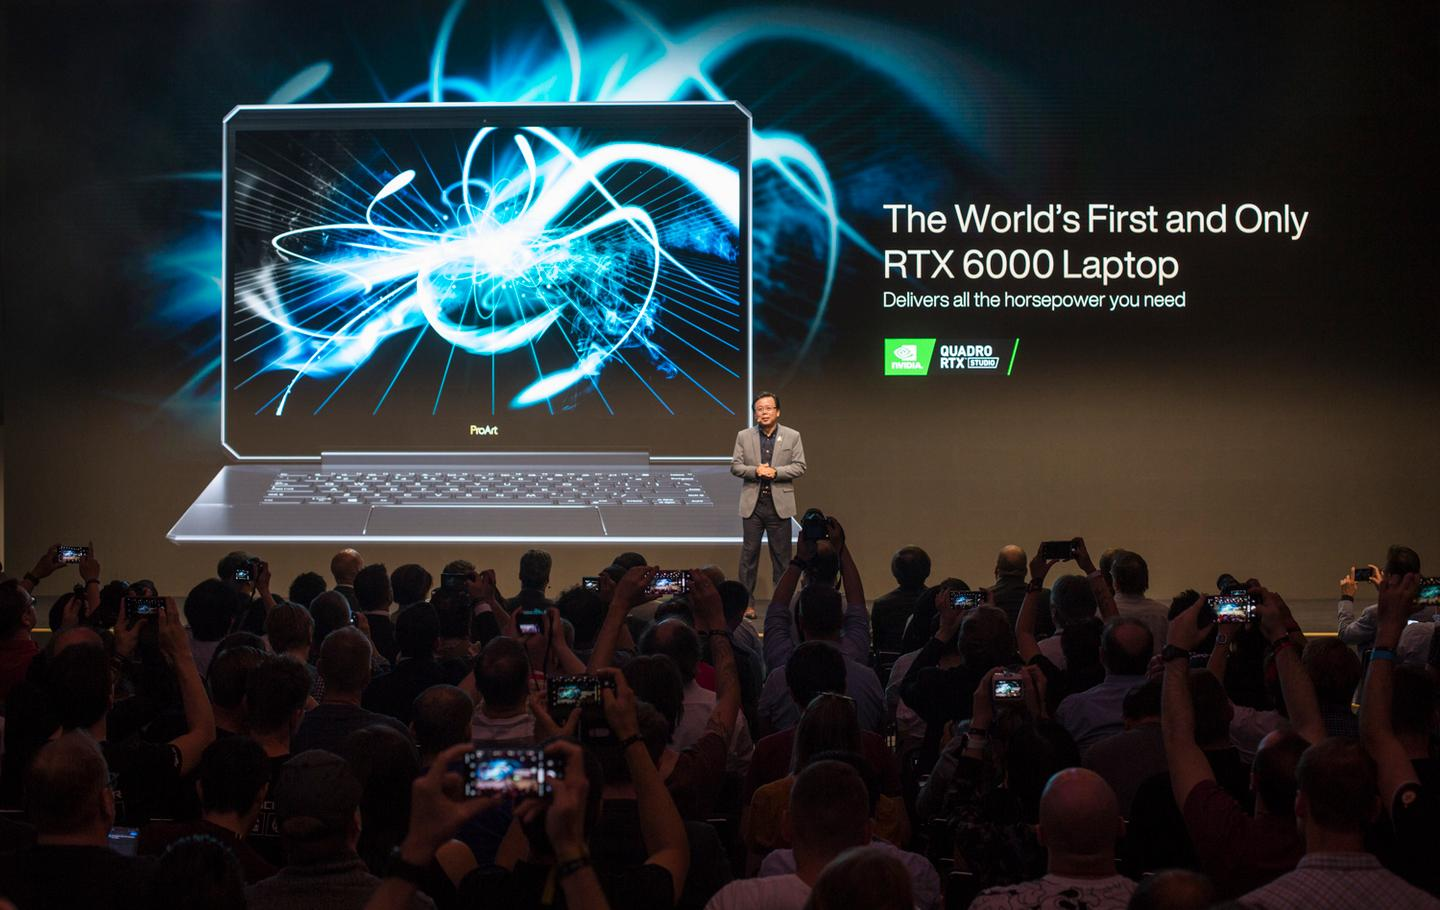 At IFA this week, Asus unveiled the world's most powerful laptop, the ASUS ProArt StudioBook Pro One